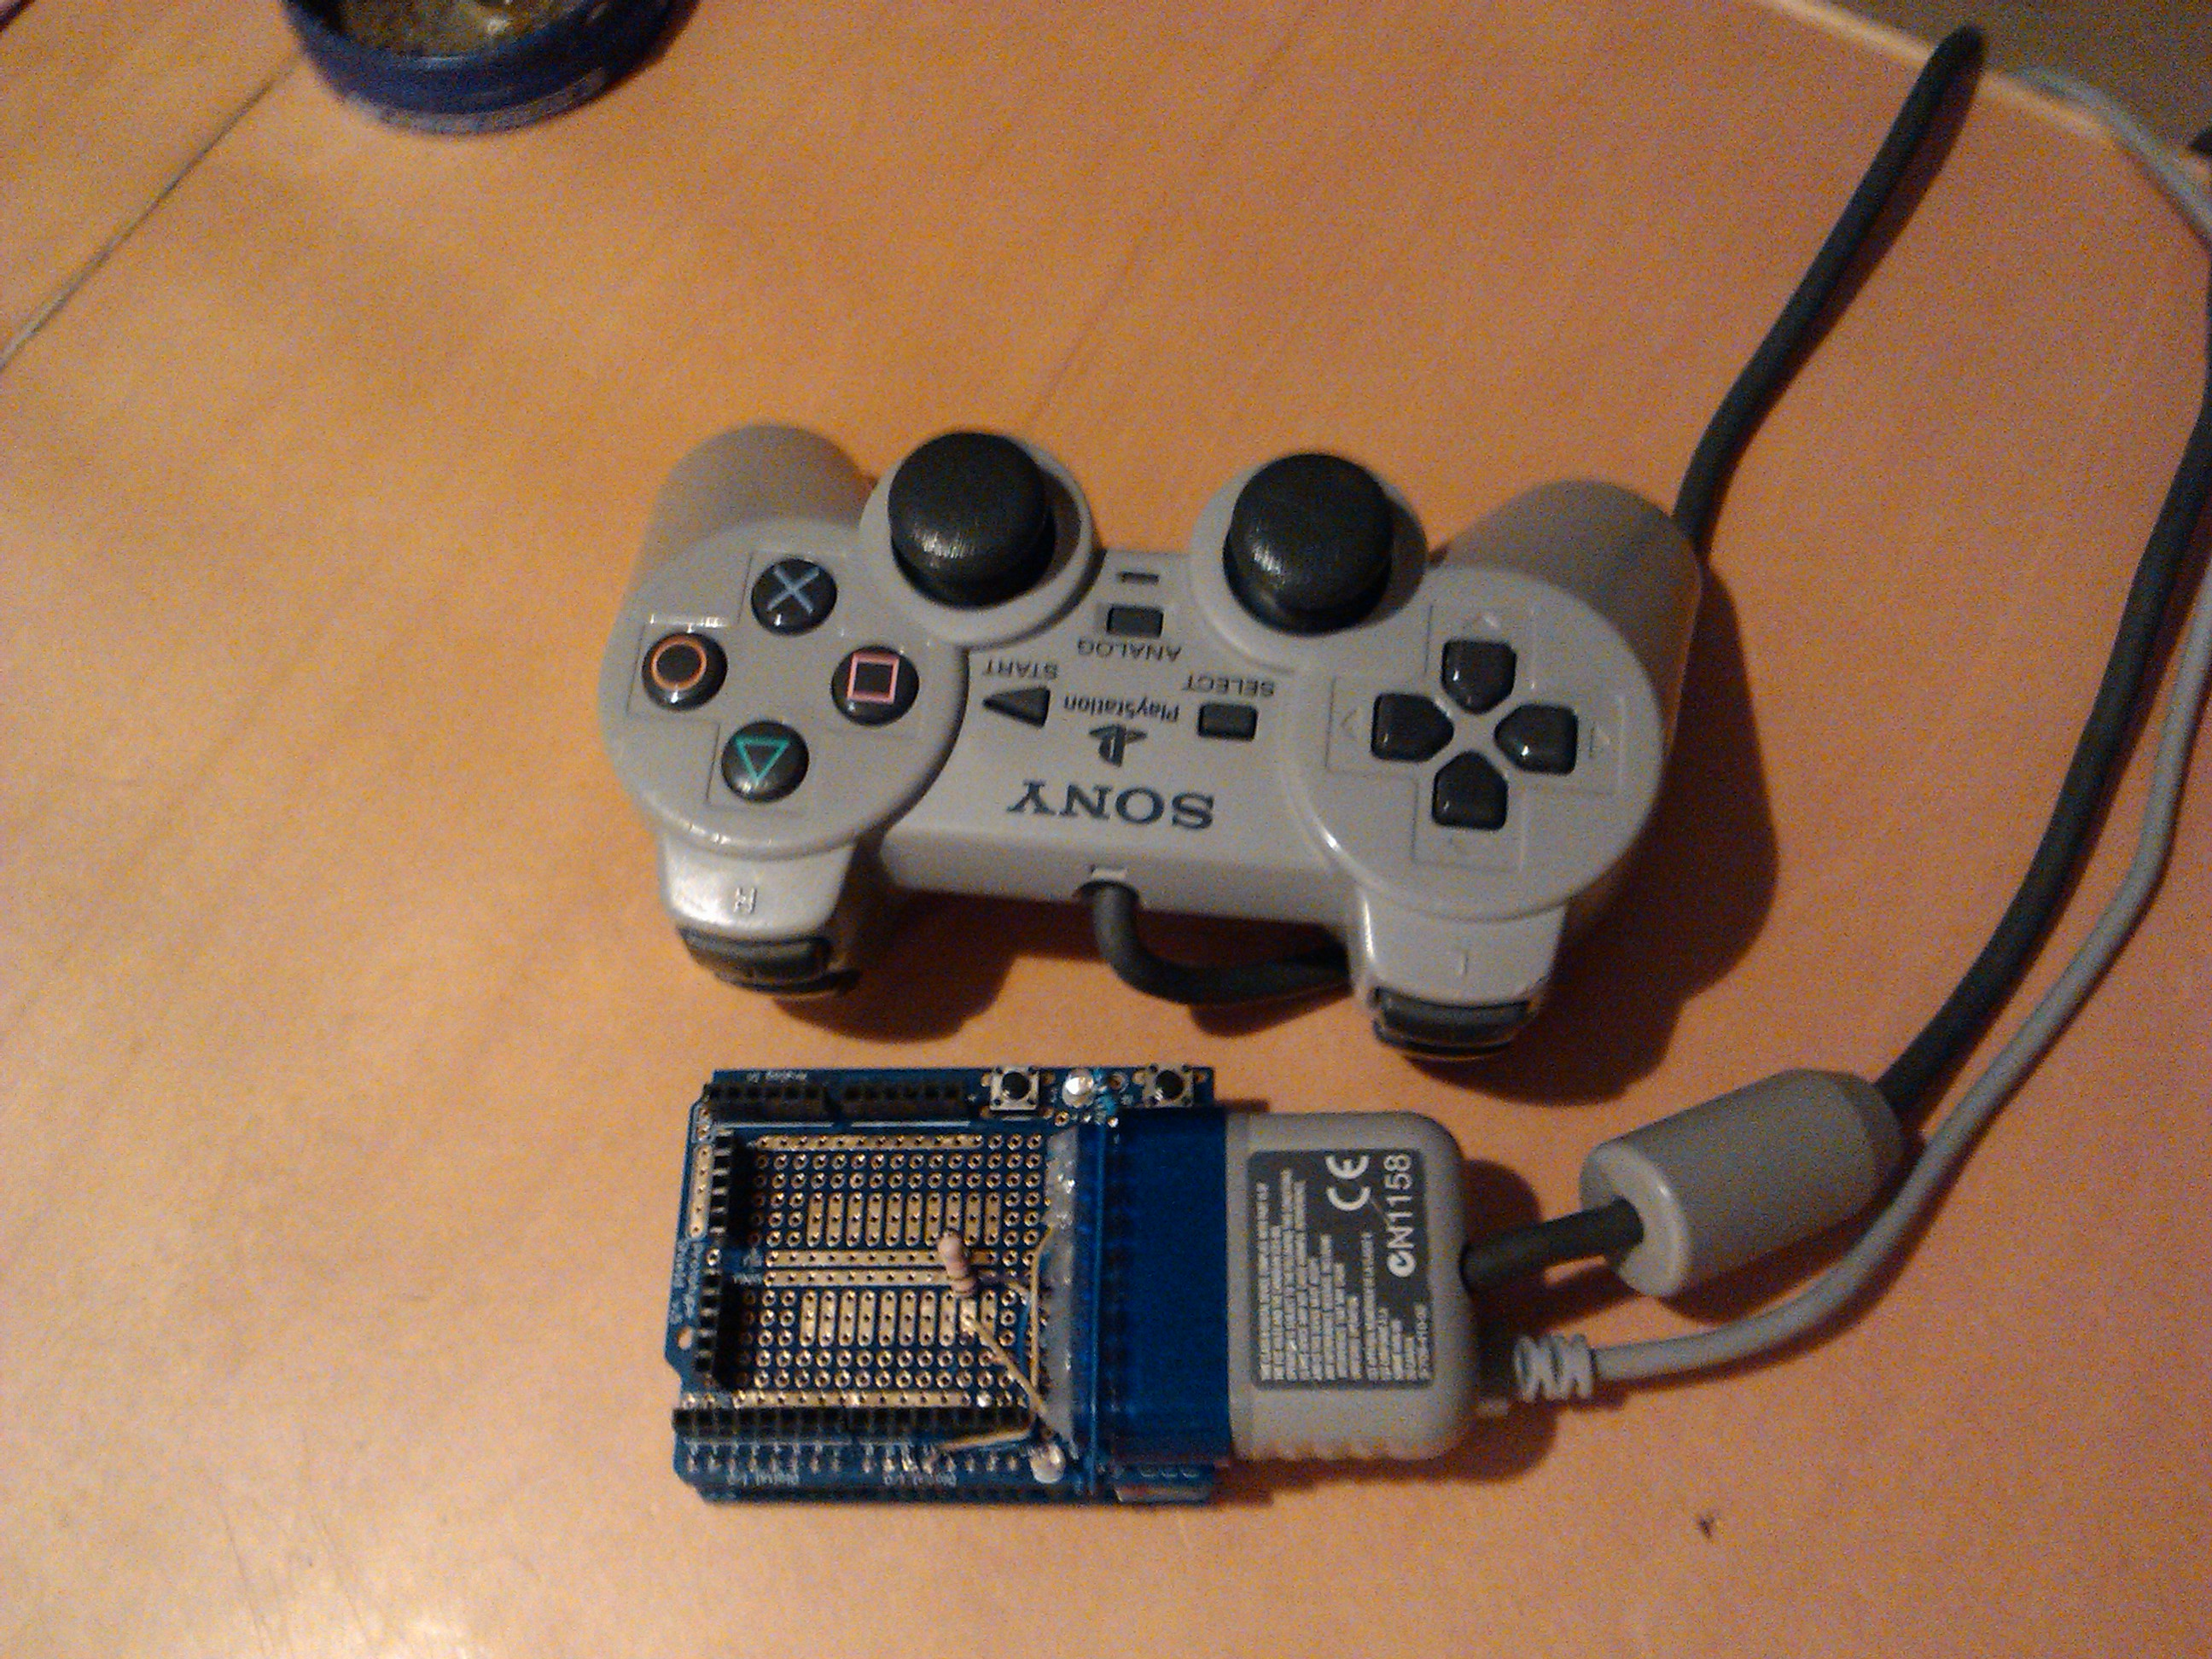 Use playstation remote on pc with arduino